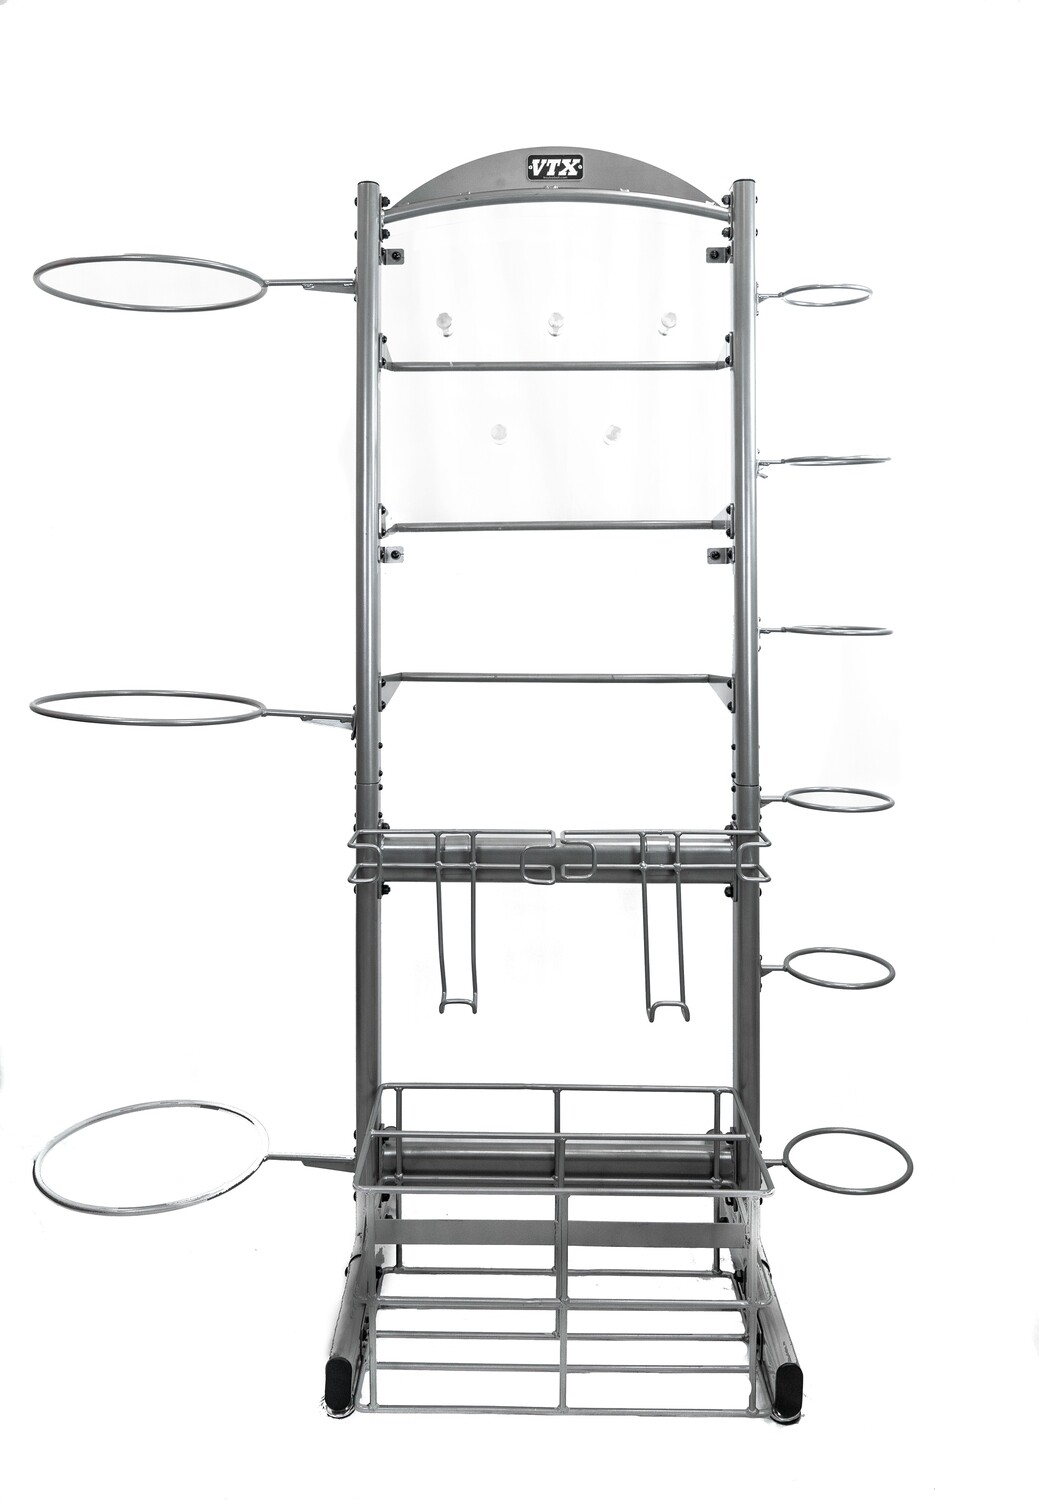 Light Accessories Rack (Large)